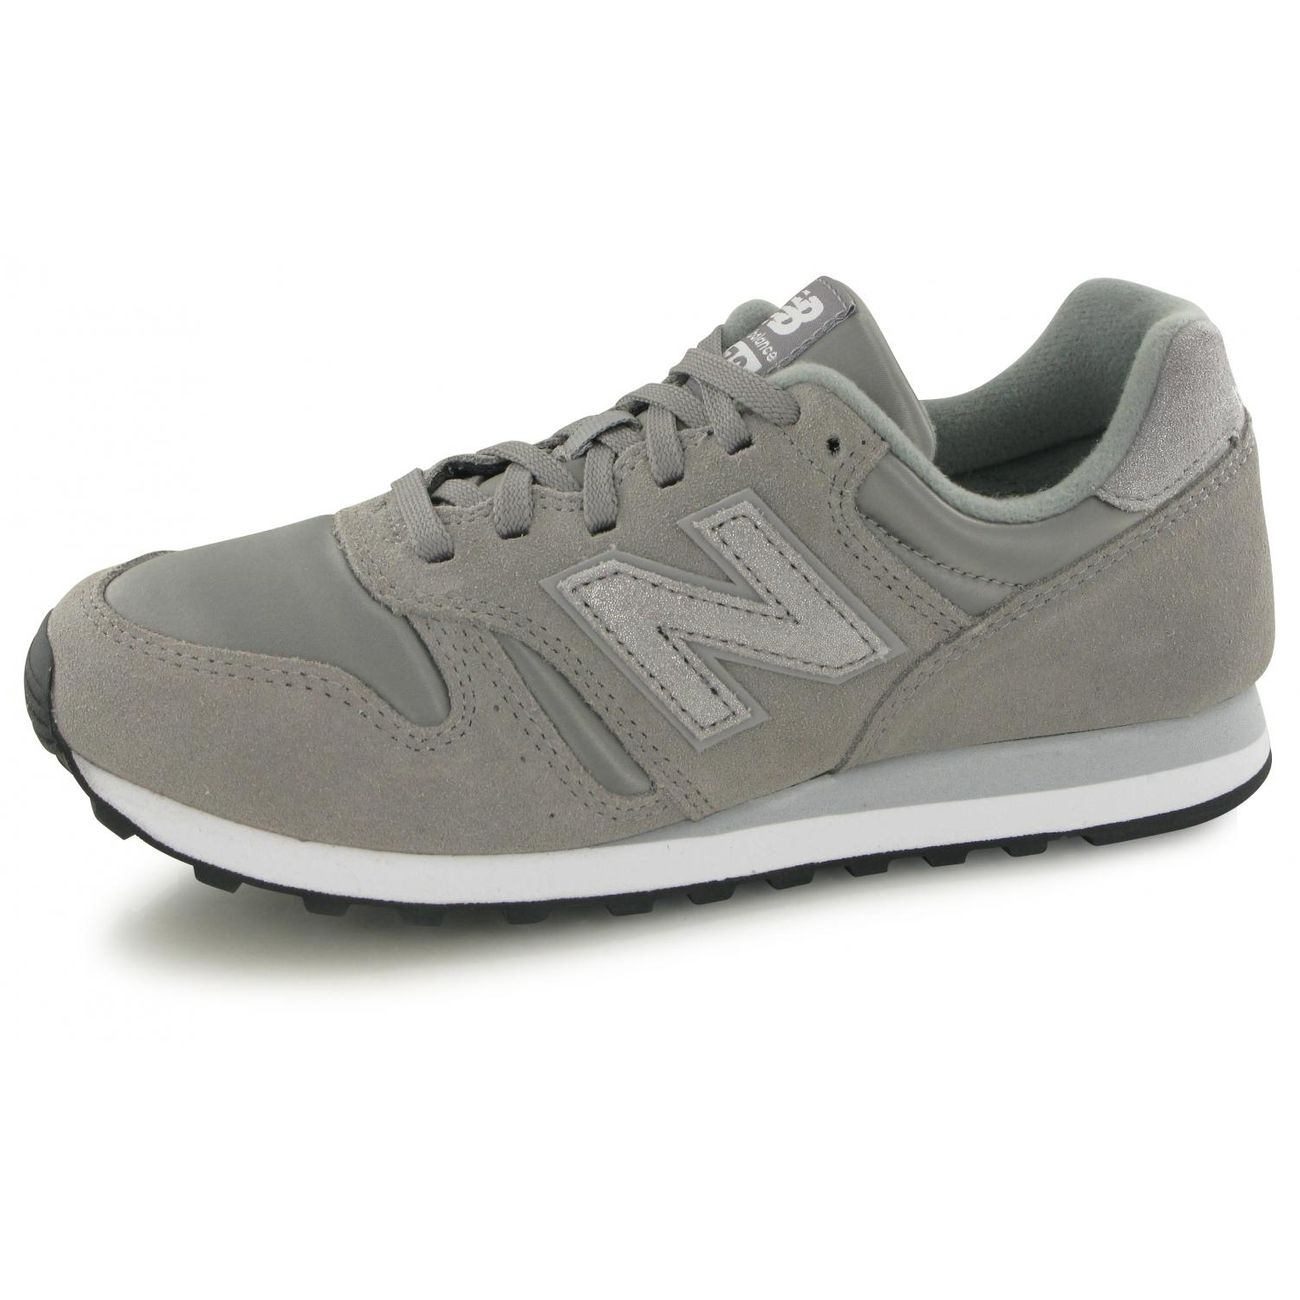 b092e4f6d655 Mode- Lifestyle femme NEW BALANCE Baskets New Balance Wl373 Gsp ...